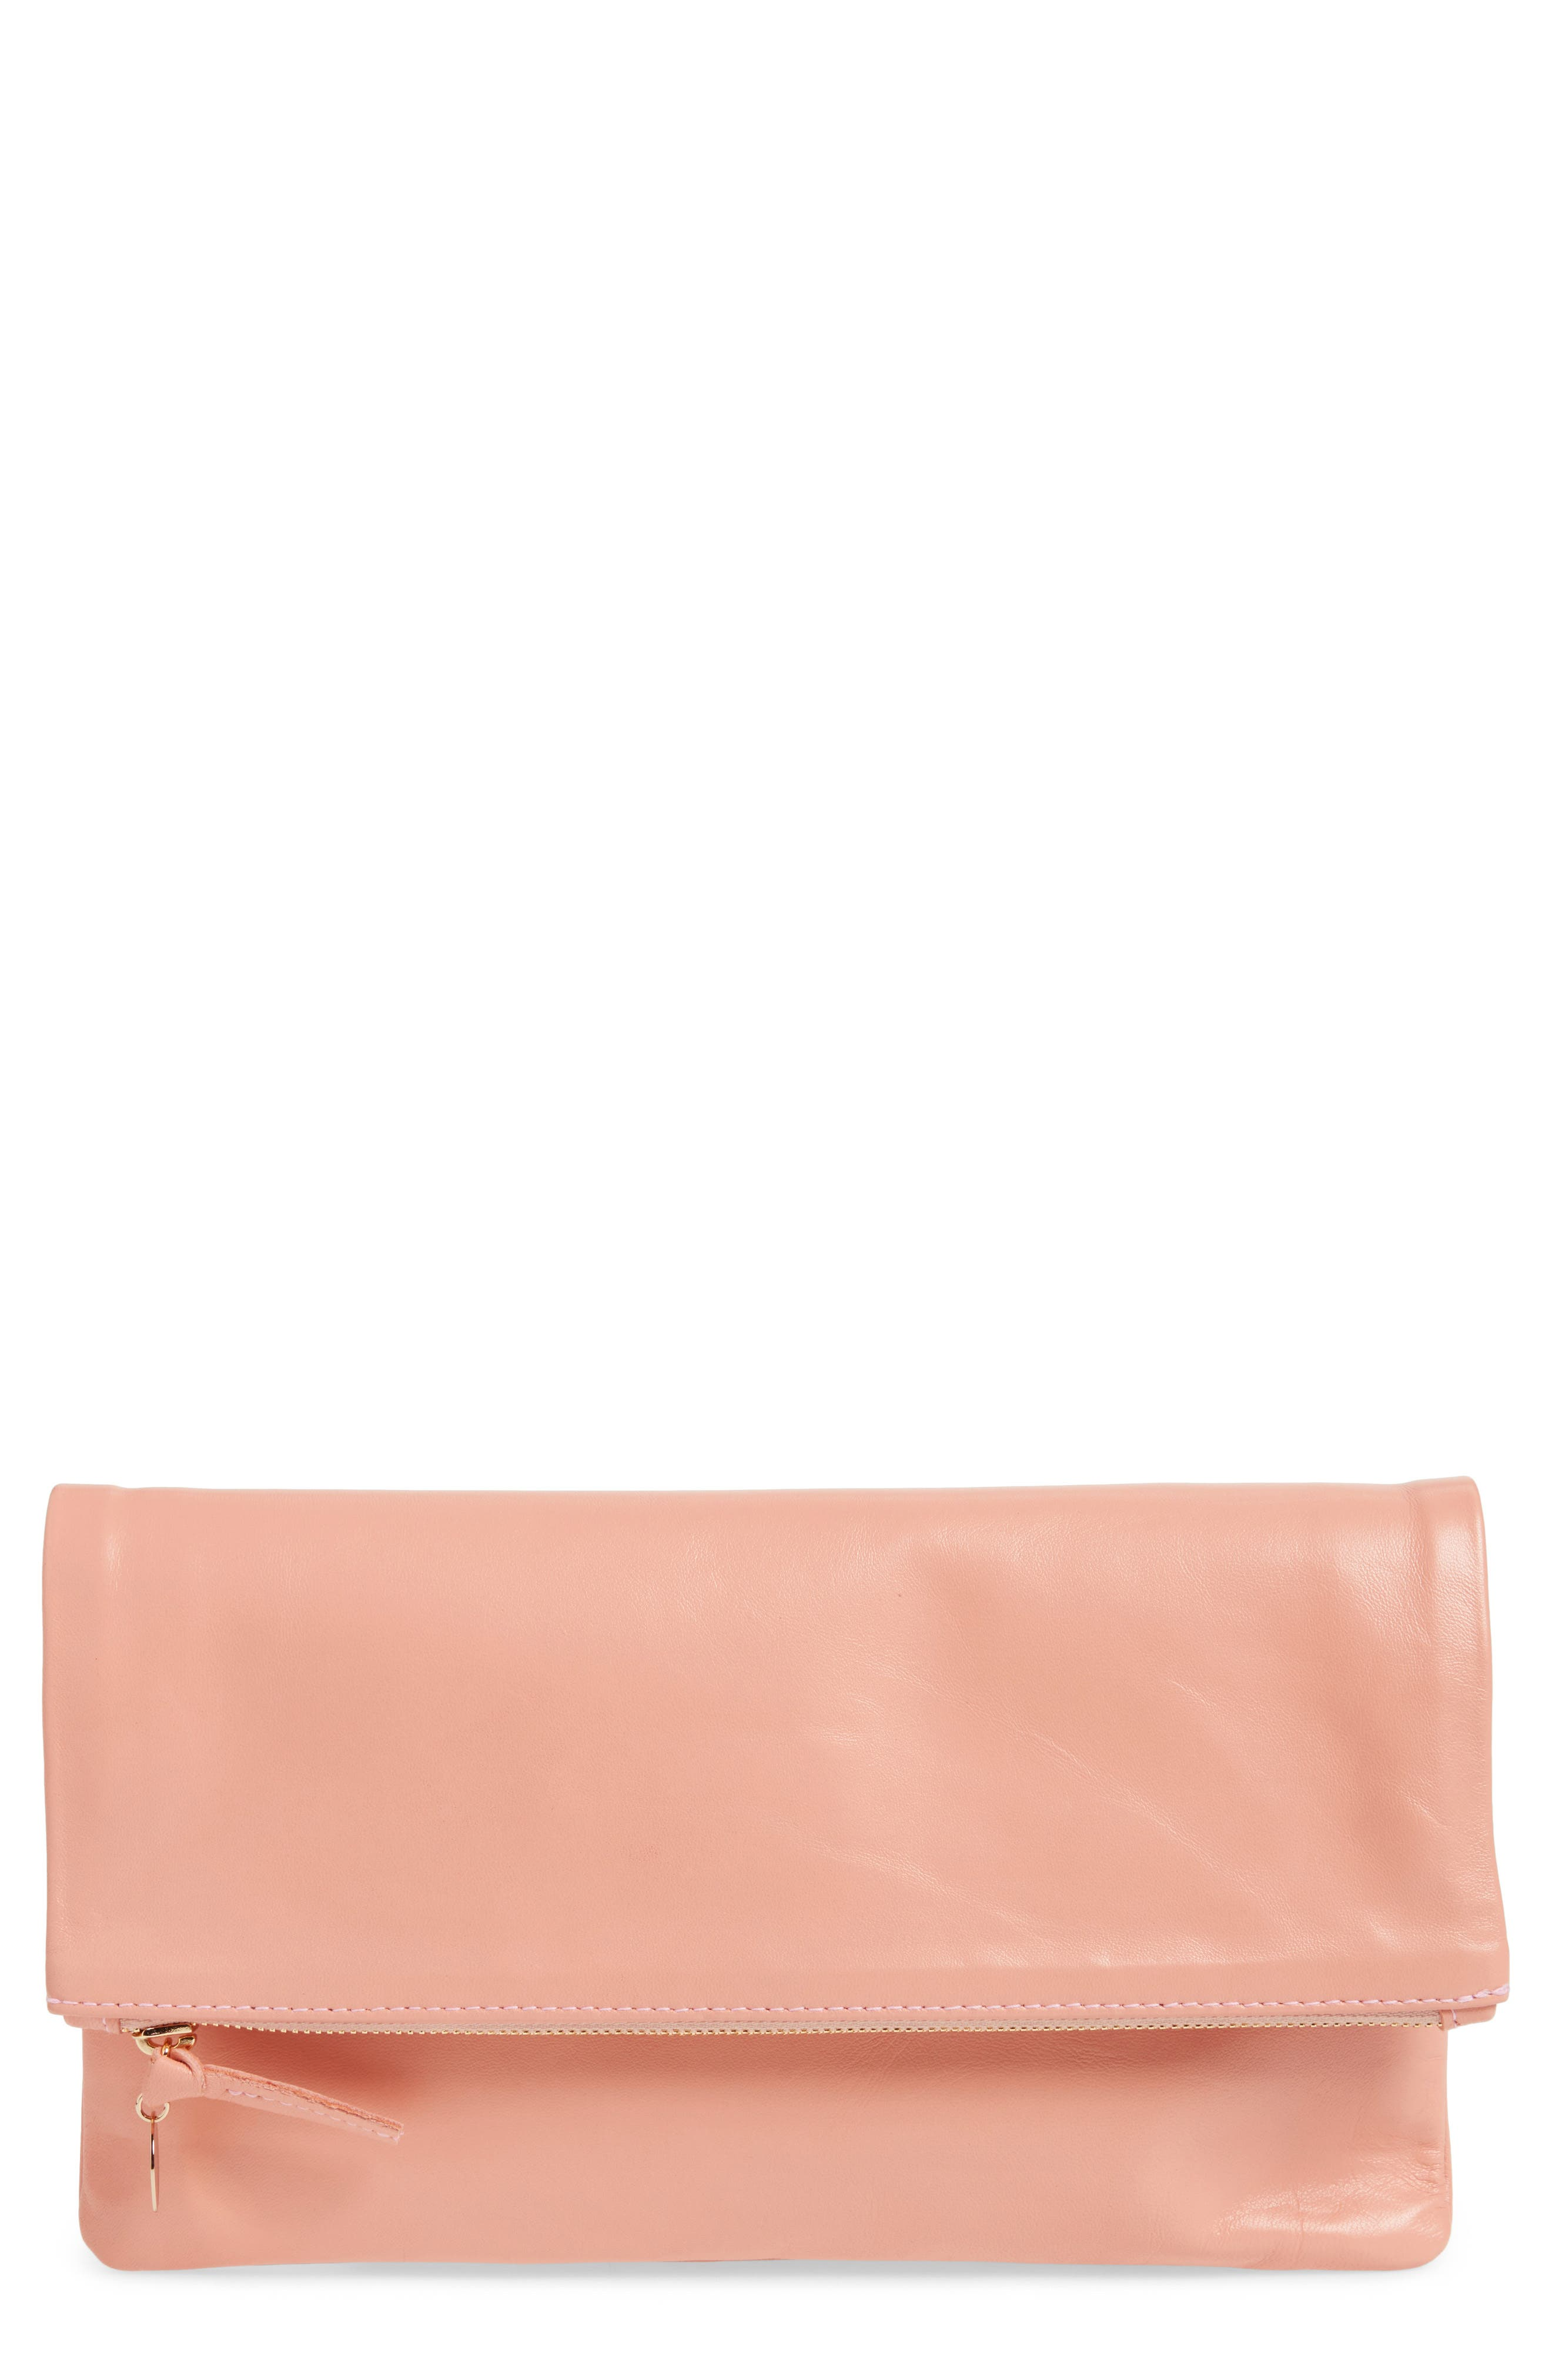 Leather Foldover Clutch,                         Main,                         color, Blush Golfa